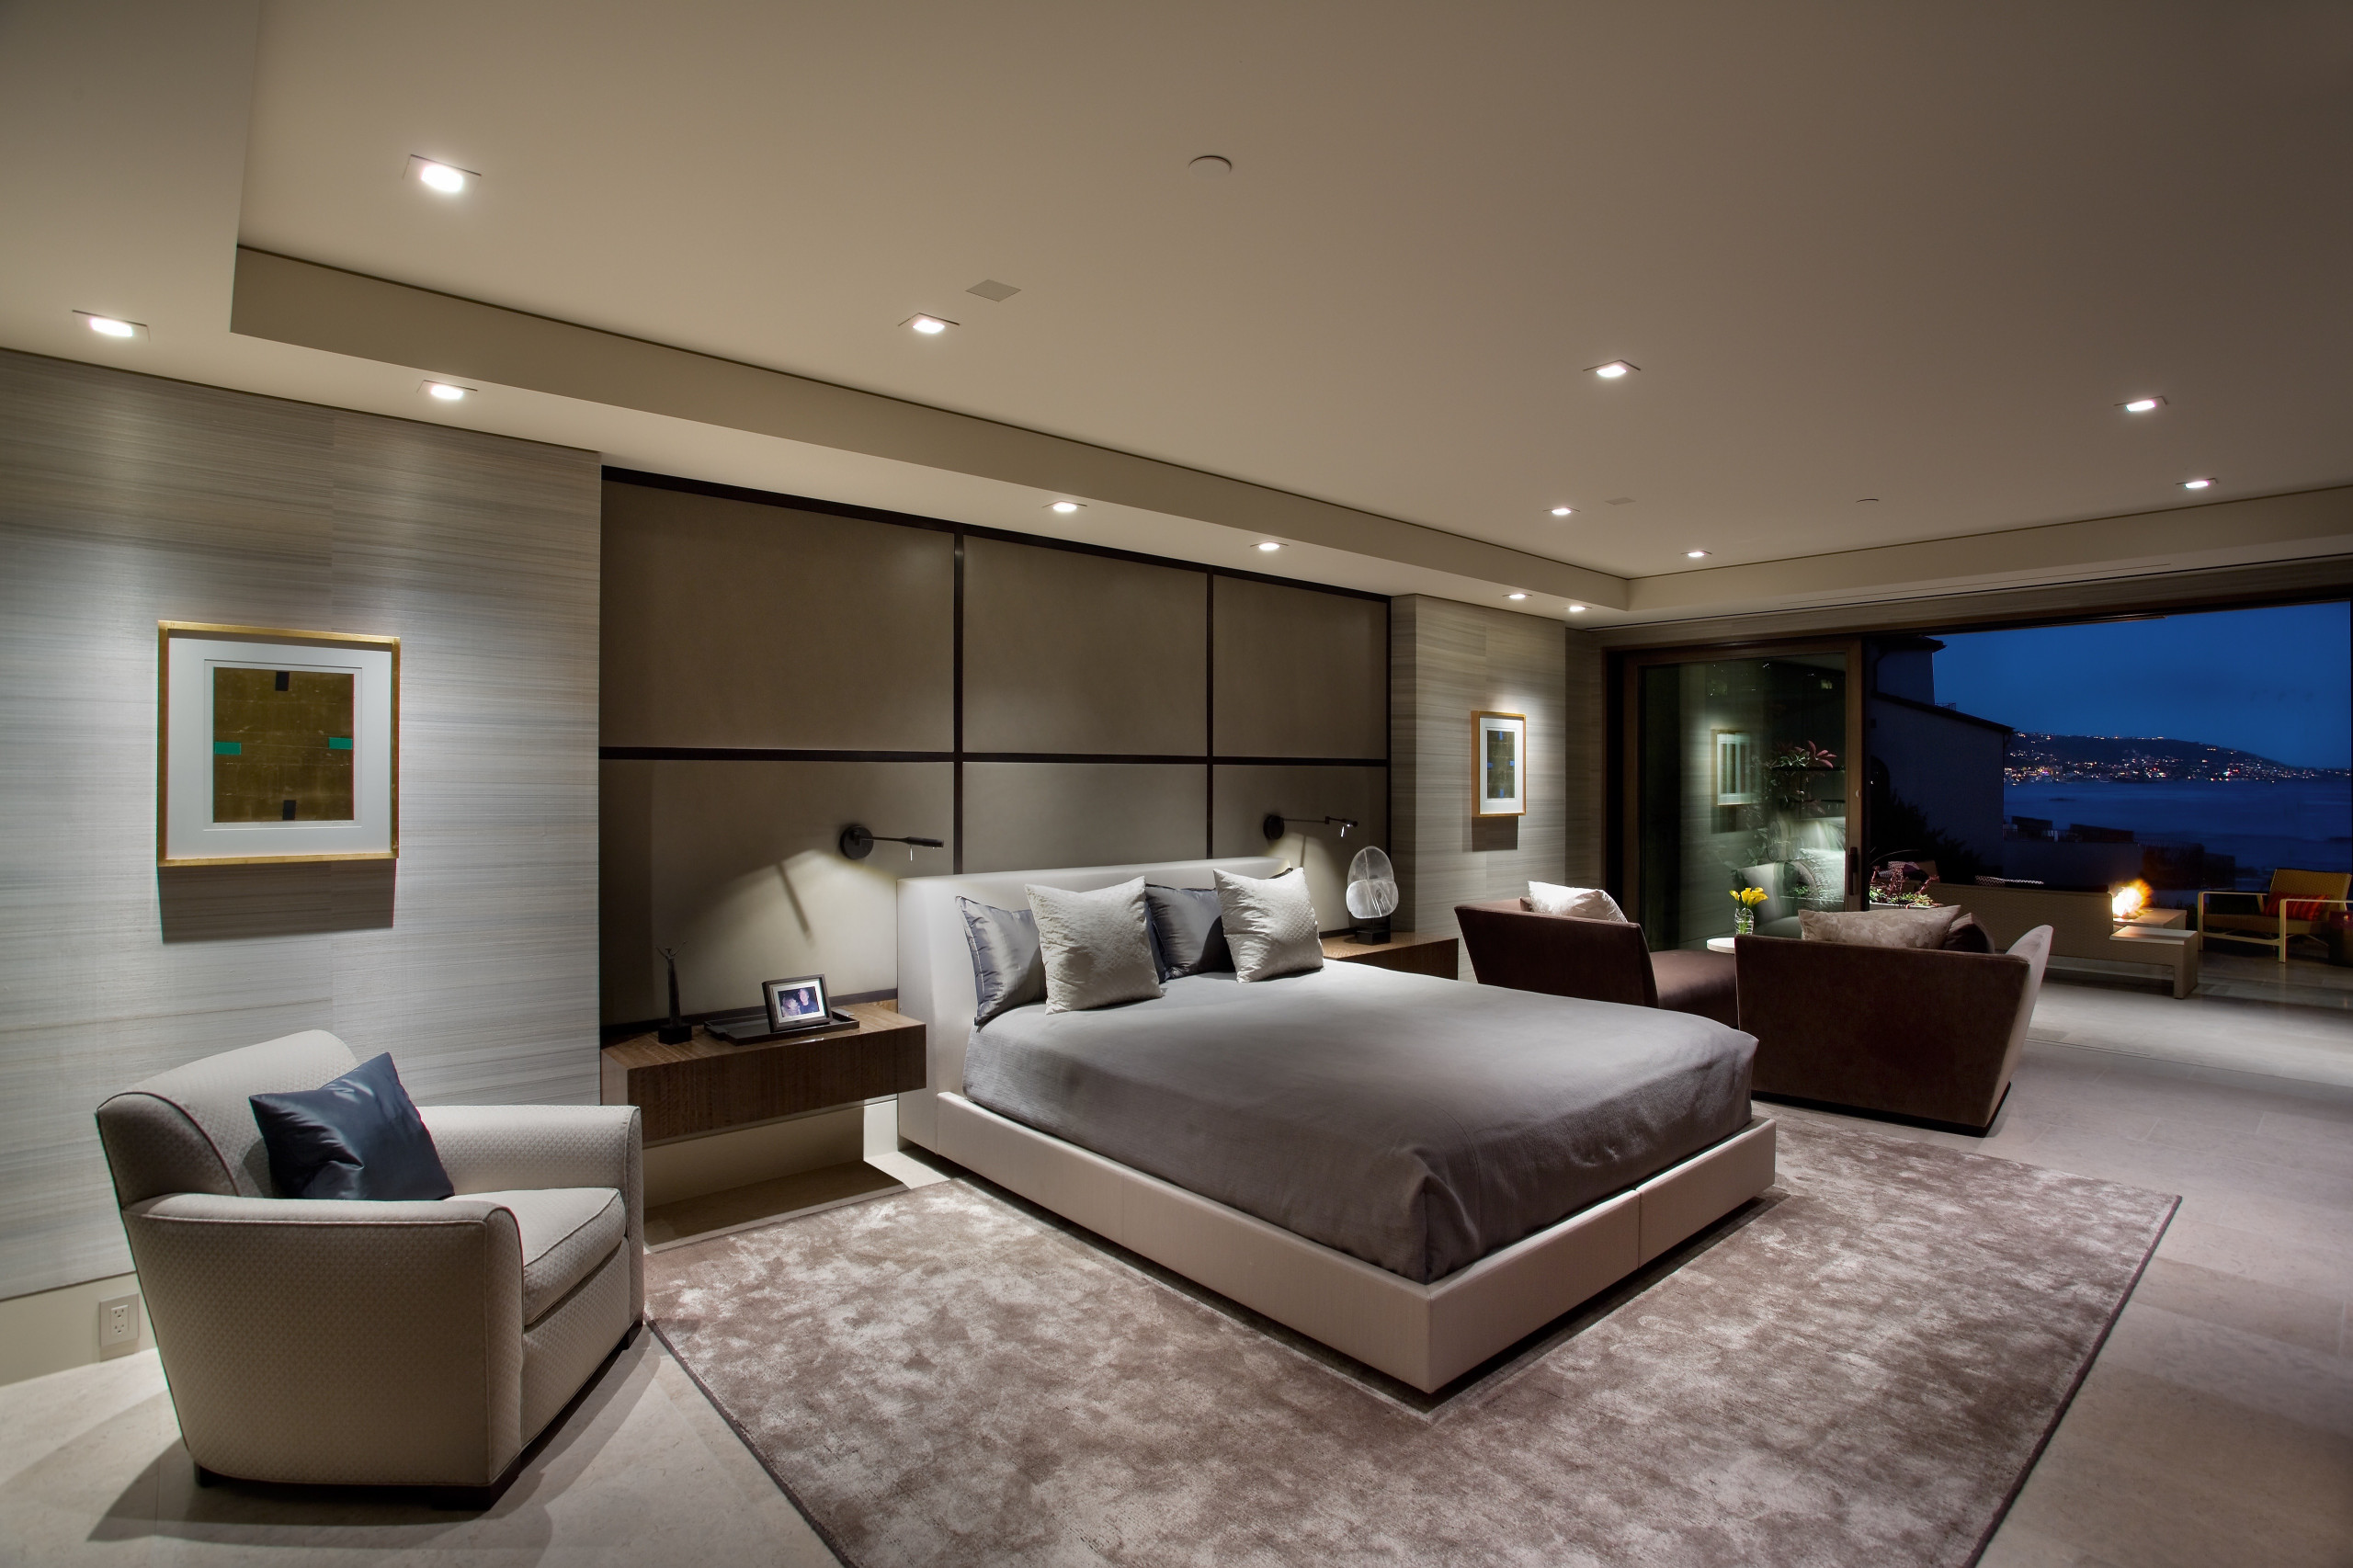 4 Beautiful Modern Master Bedroom Pictures & Ideas - January